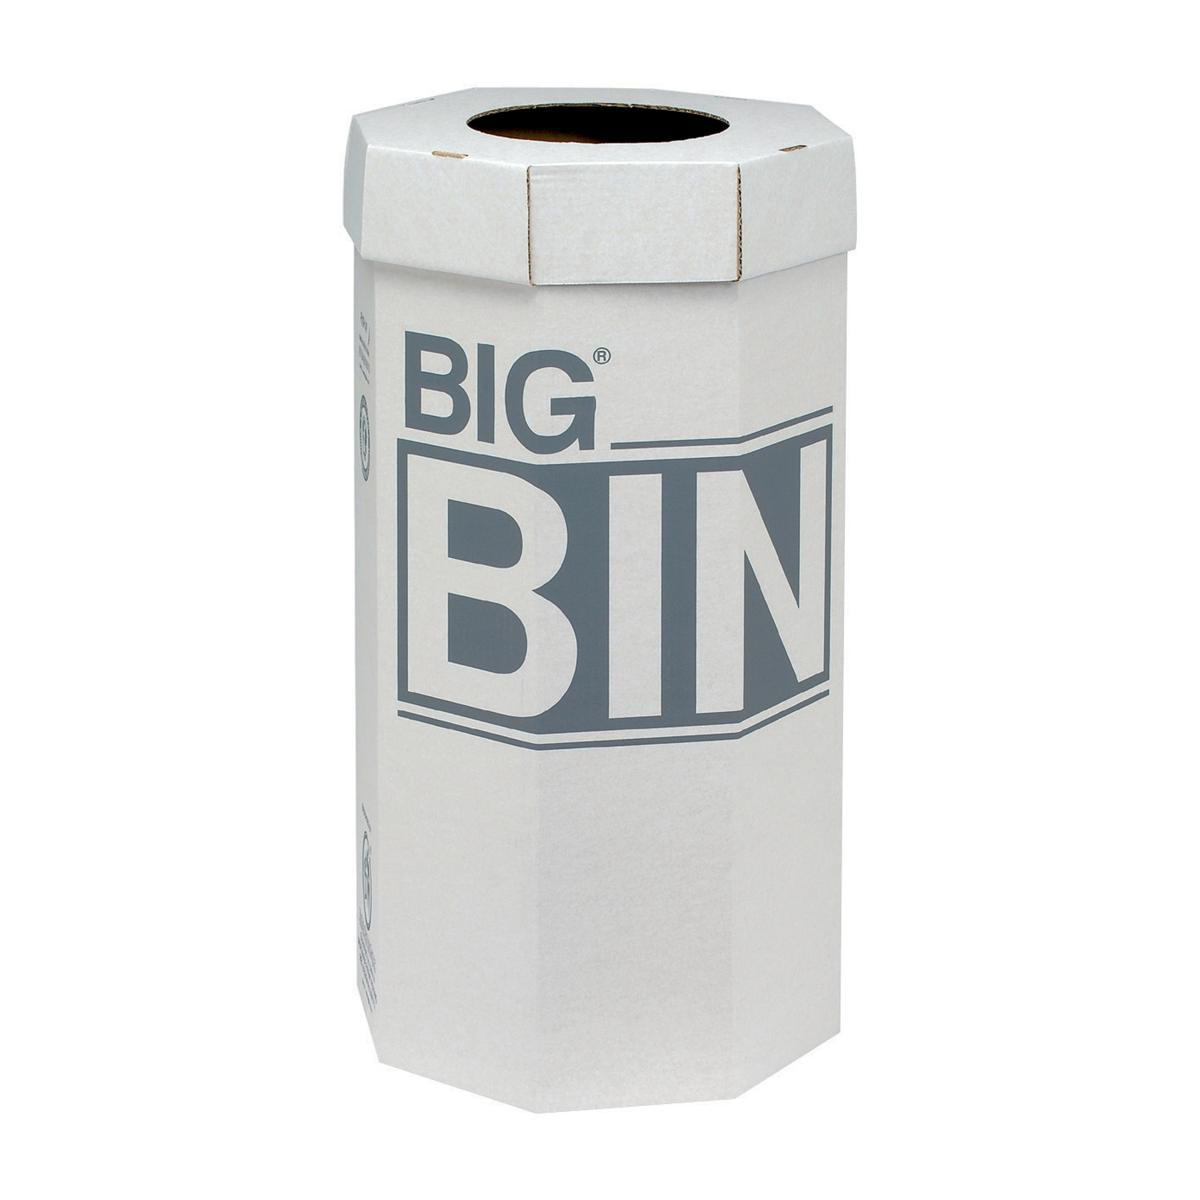 Recycling Bins Acorn Large Bin Flat Packed Recycled Board Material 160 Litres 450x900mm White Ref 142958 [Pack 5]